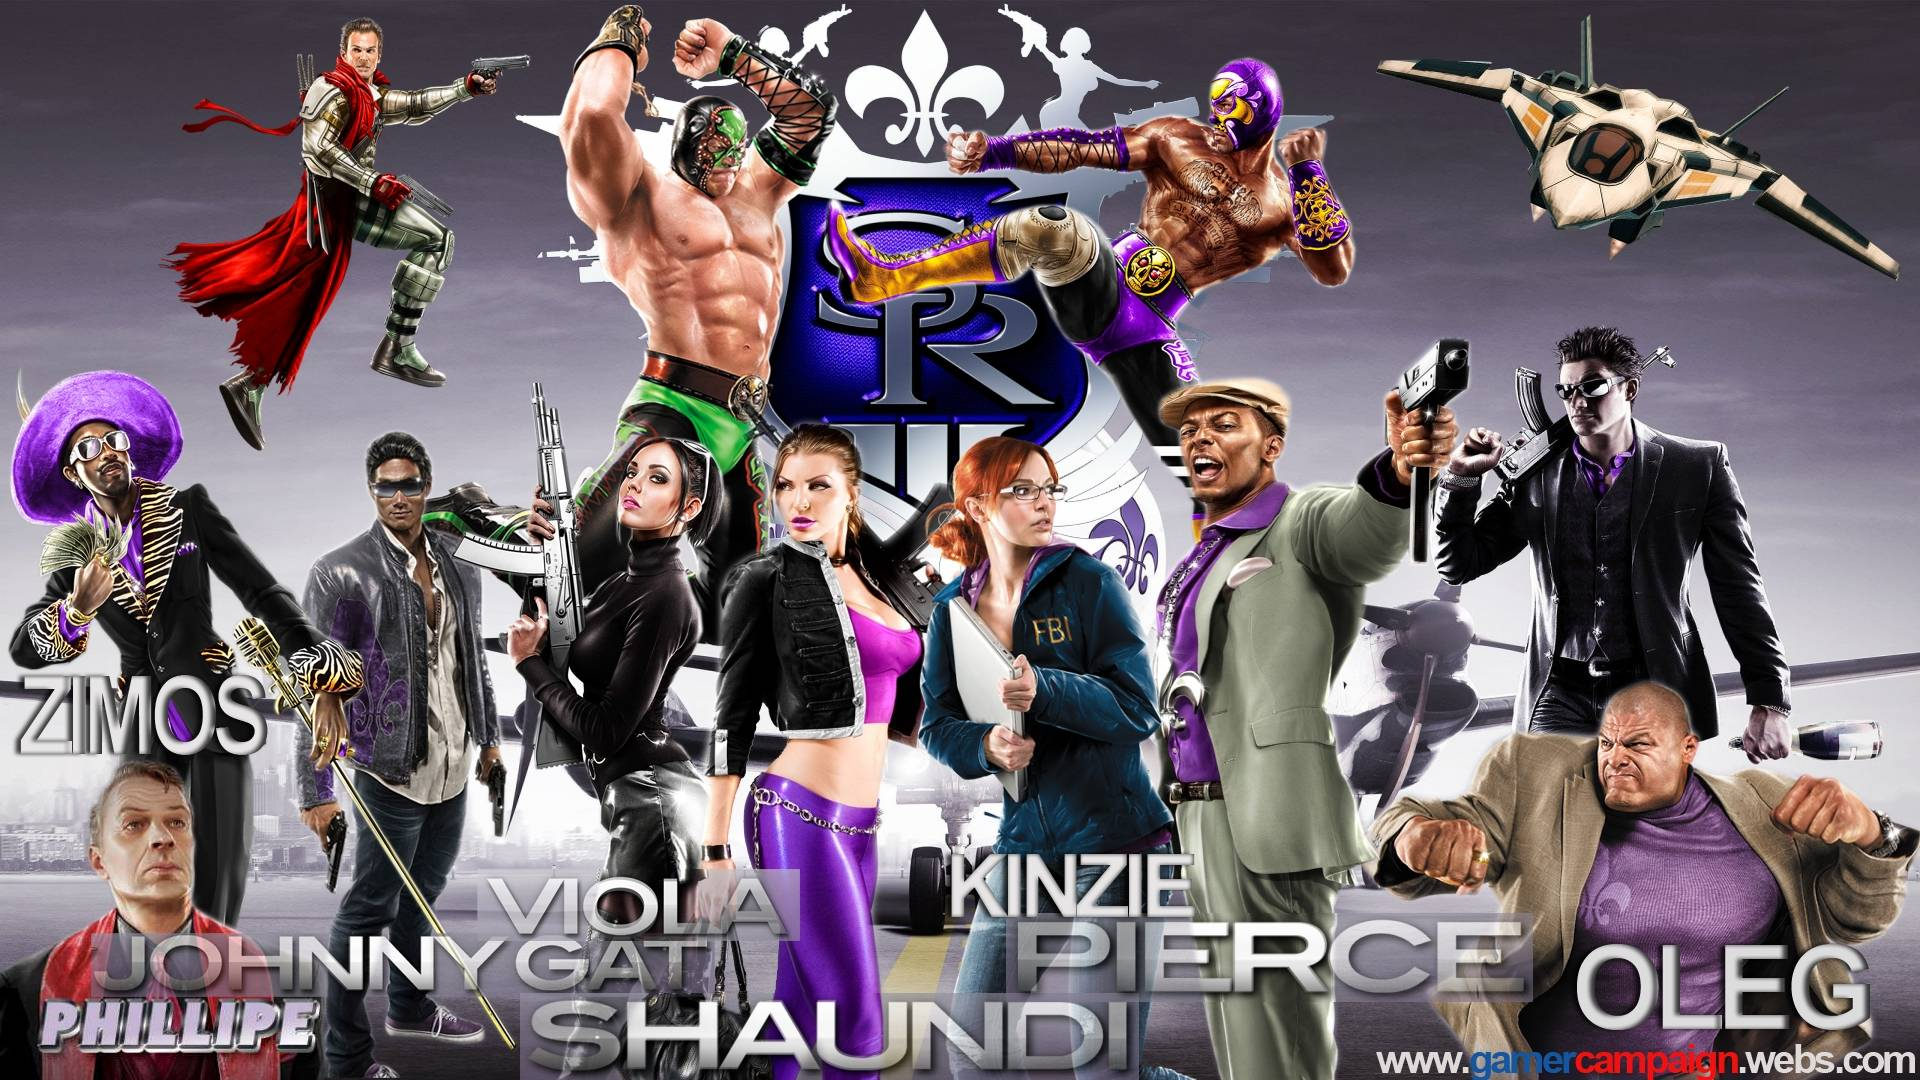 Saints row 4 clipart picture royalty free download Saints row 4 clipart - ClipartFox picture royalty free download